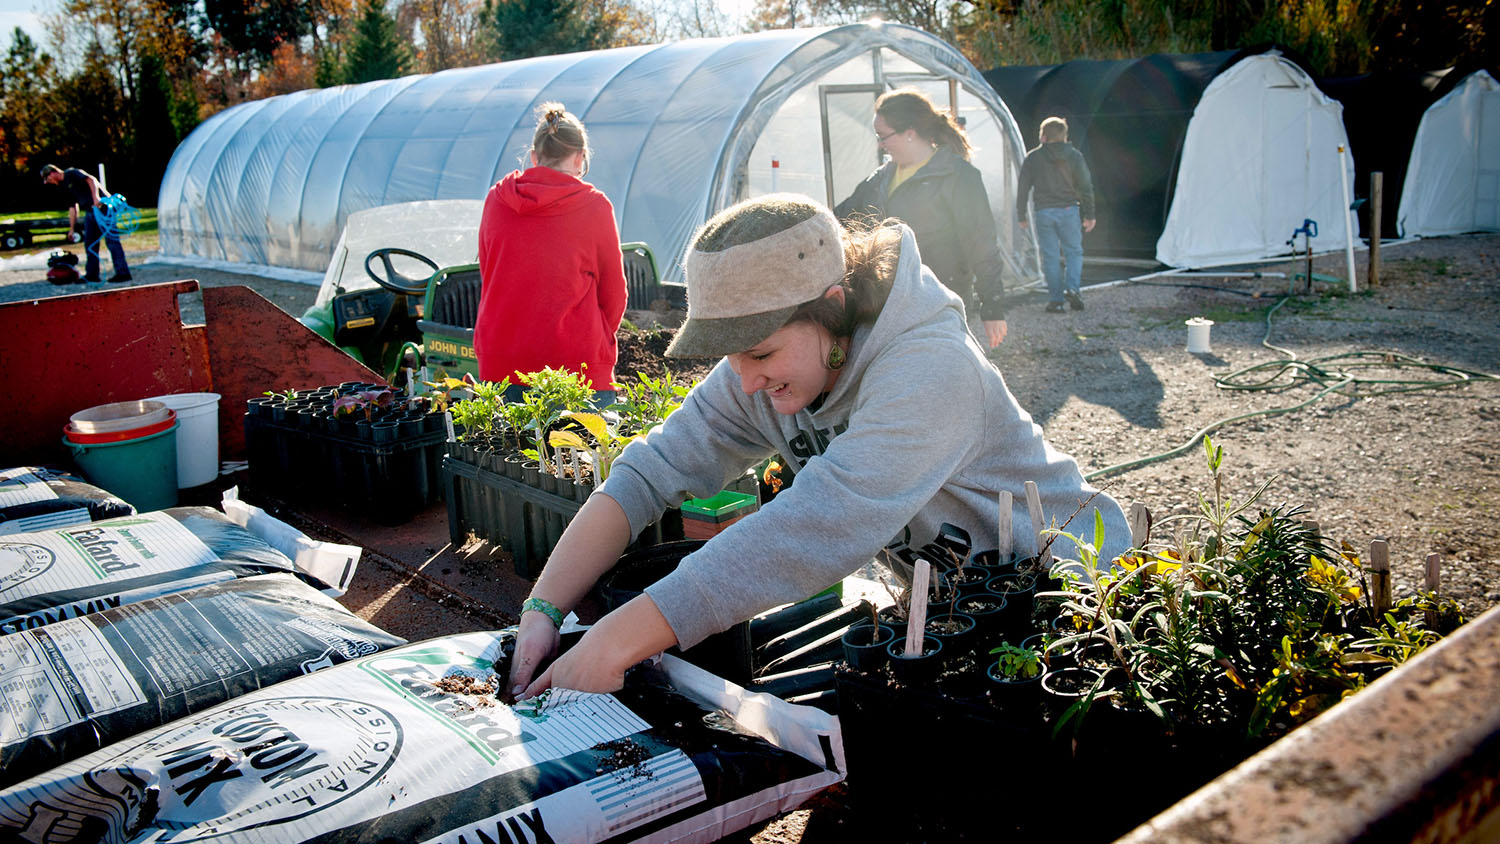 Capped girl digging into a bag of dirt with plants in front of her and greenhouses behind her, haloed by light.